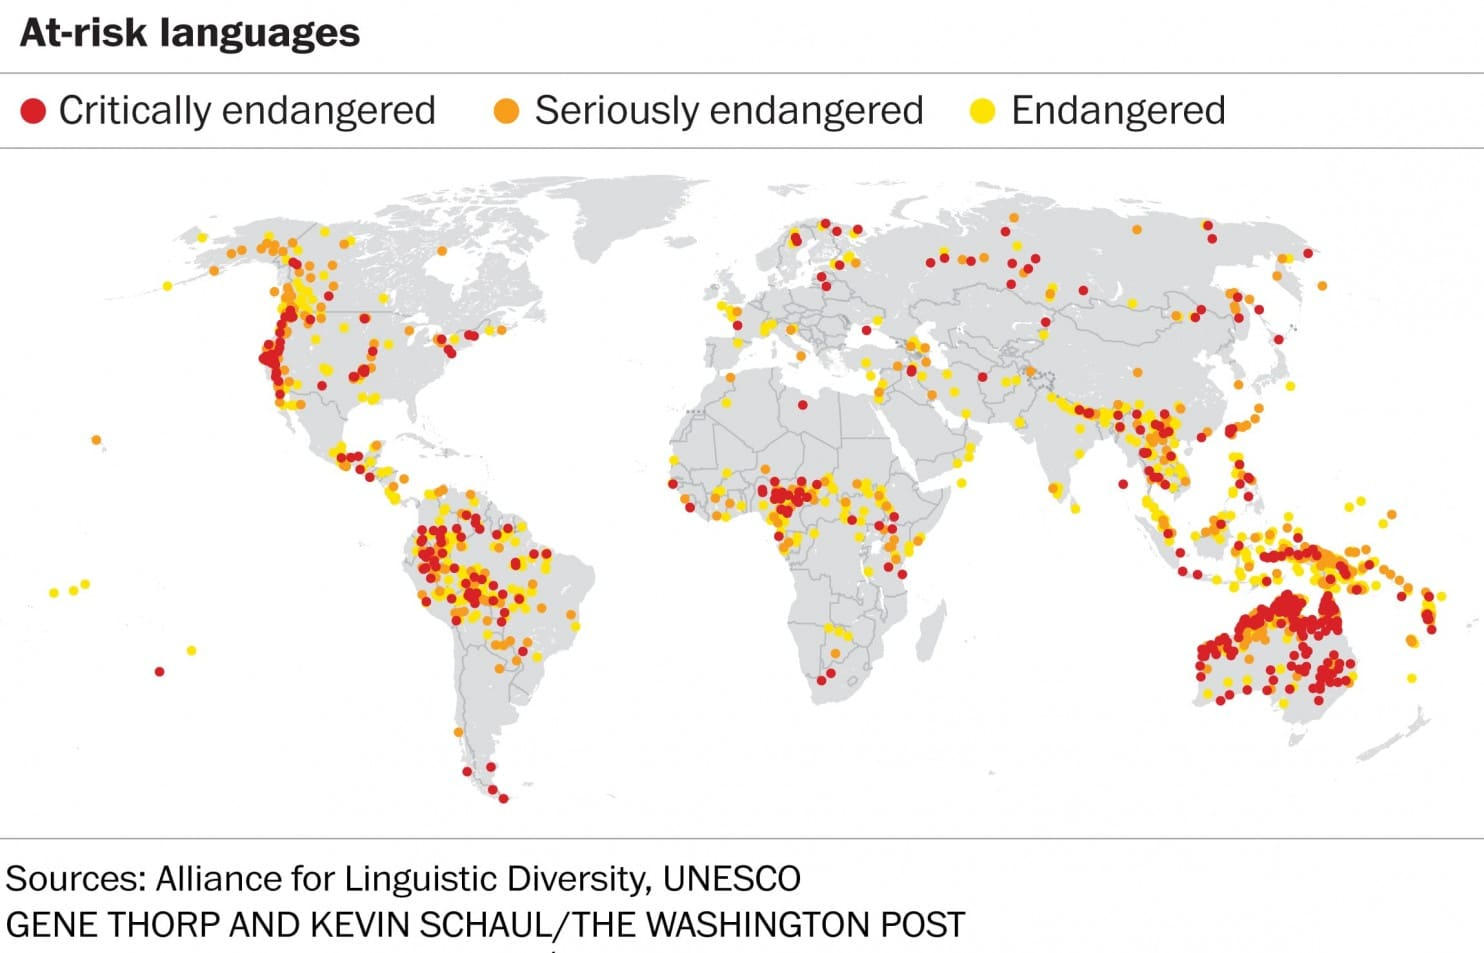 Les langues en danger. Les points rouges représentent les langues en danger critique d'extinction. En orange, celles en grave danger. En jaune, celles en danger.